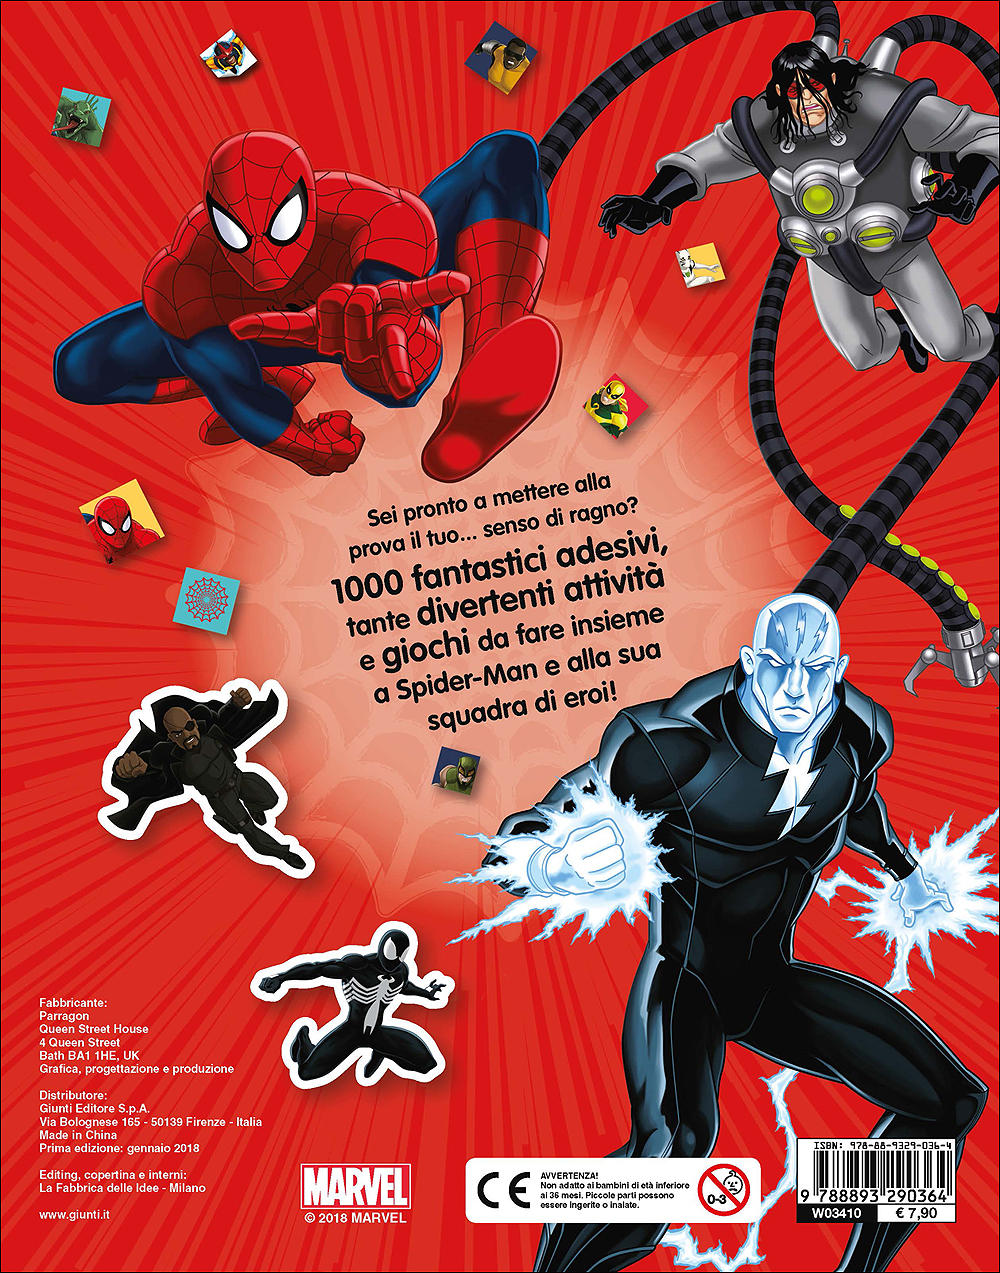 500/1000 Stickers - Ultimate Spider-Man. 1000 Stickers